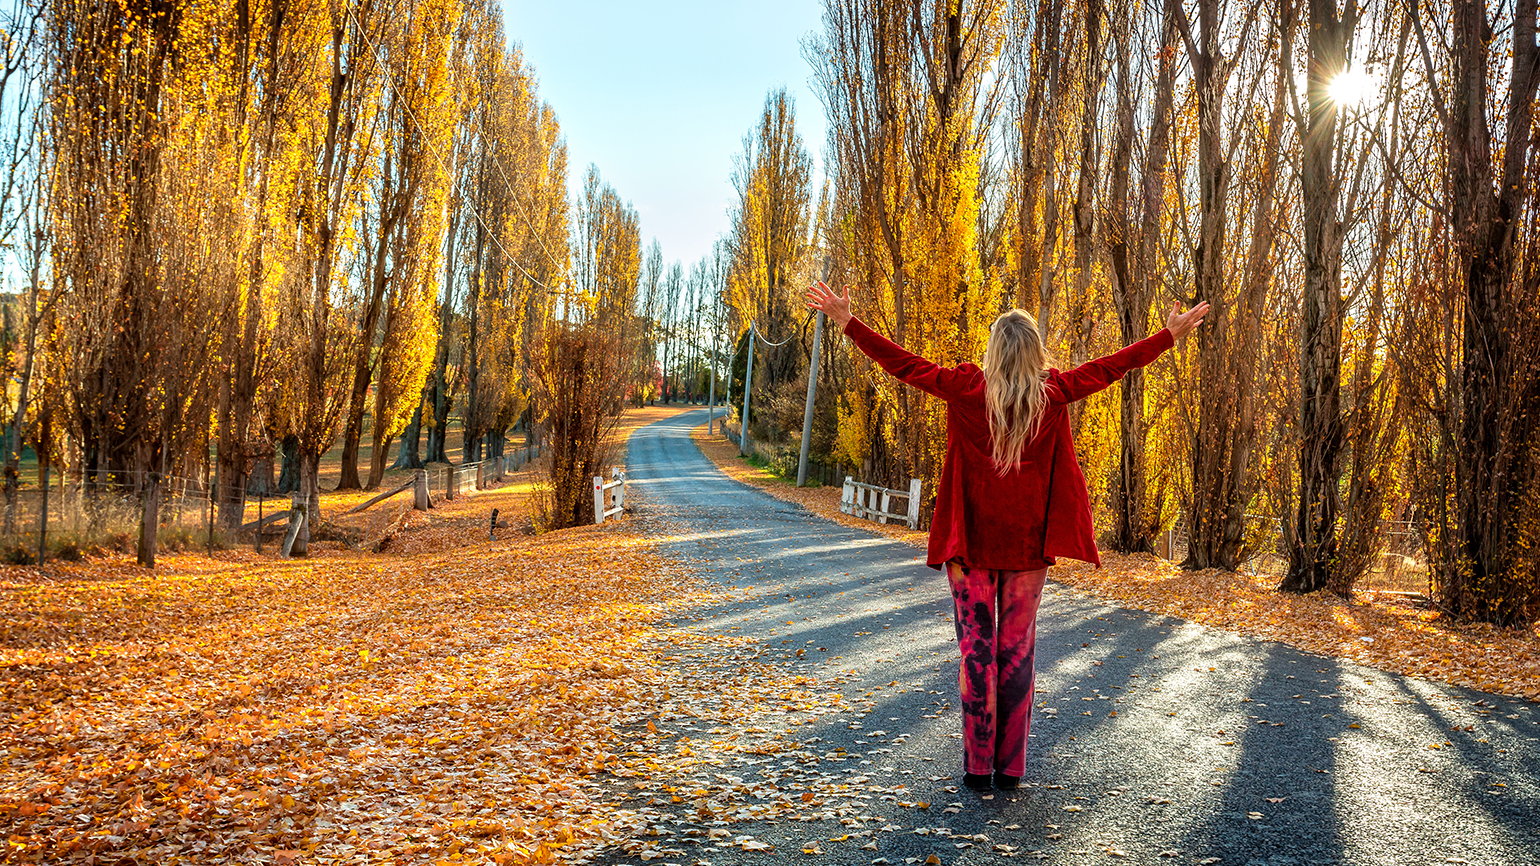 A woman raises her arms in gratitude on a country road in autumn